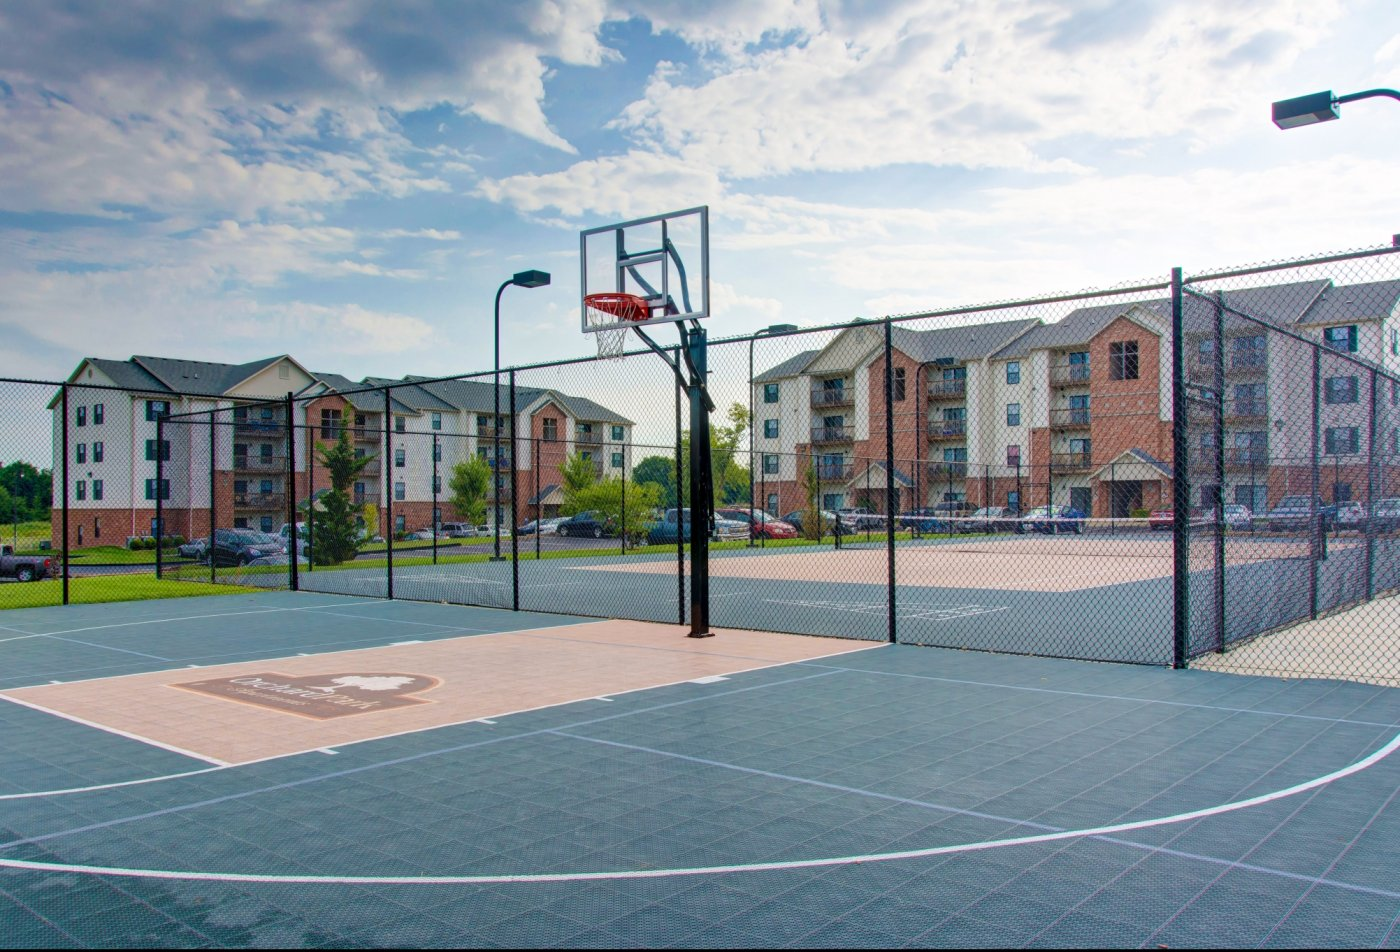 fenced in basket ball and tennis quarts with the Orchard Park Apartments logo on courts